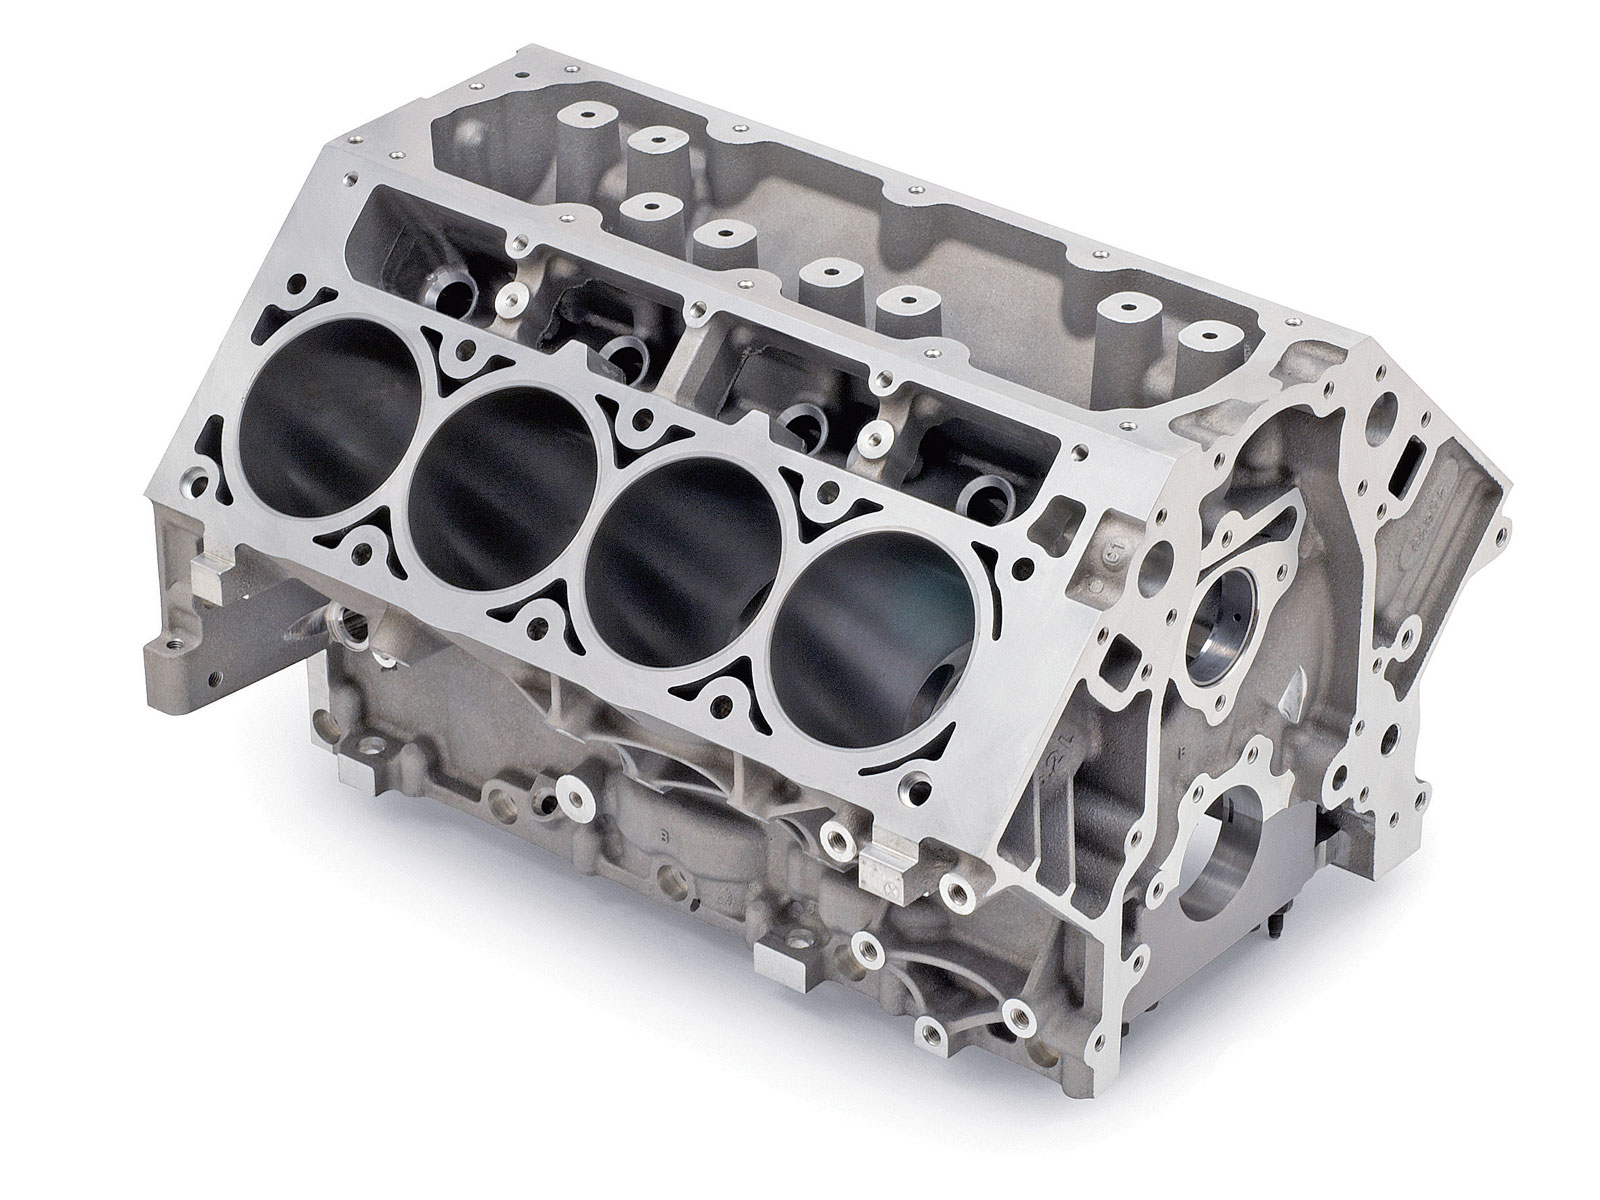 GM LS3 block 6.2, 24x